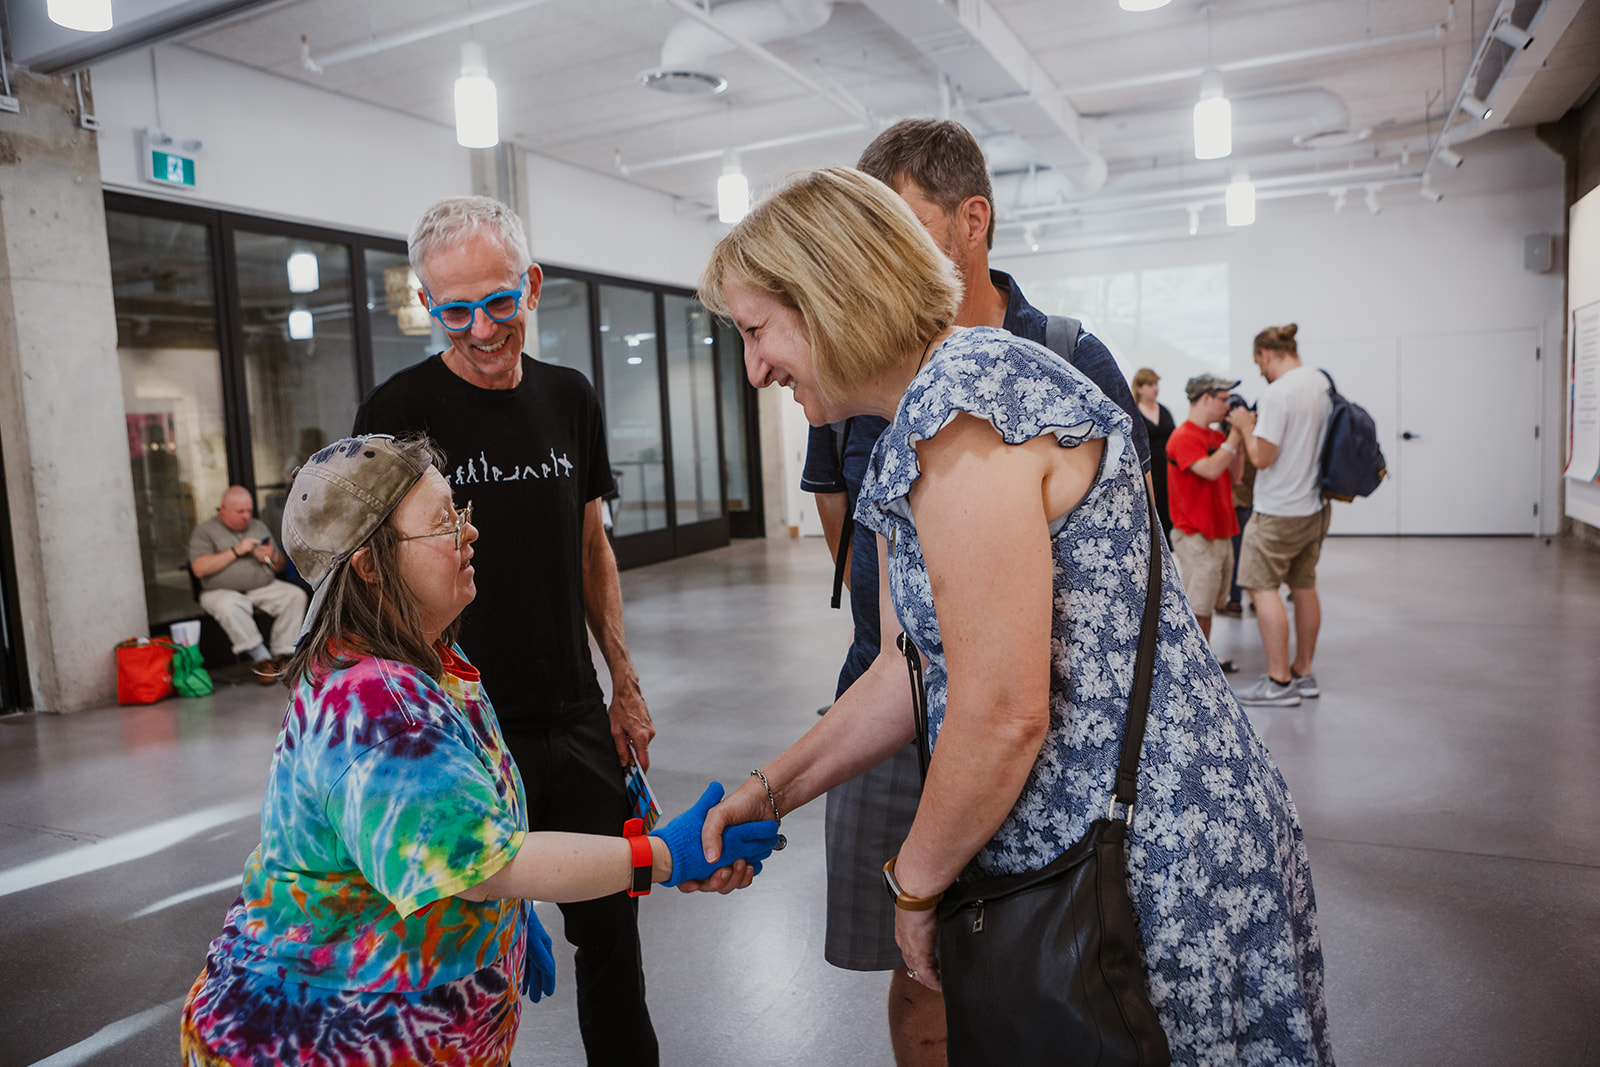 Teresa smiles as a friend from the disability support community shakes her hand. Photo: This Is It Studios.